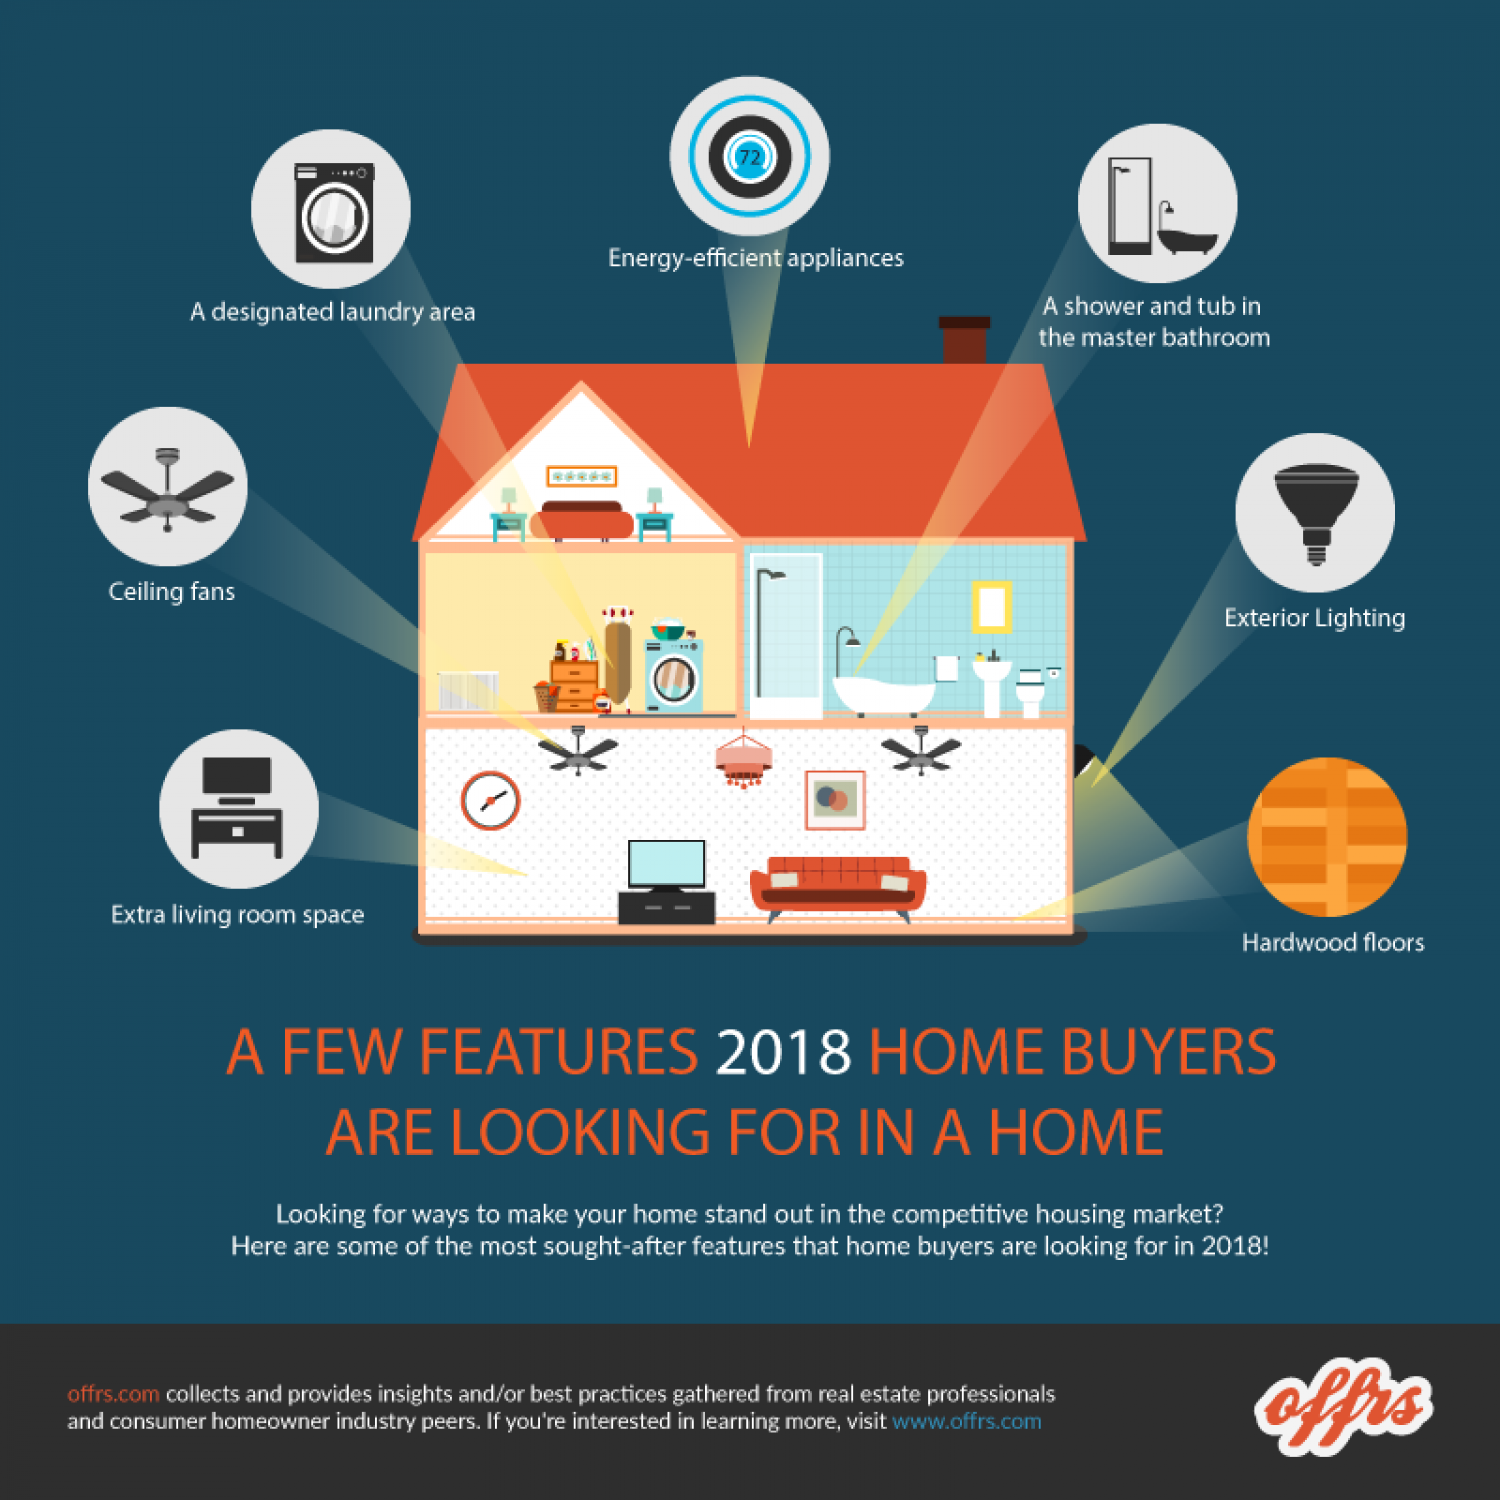 offrs Review of Features 2018 Home Buyers Are Looking For in a Home Infographic